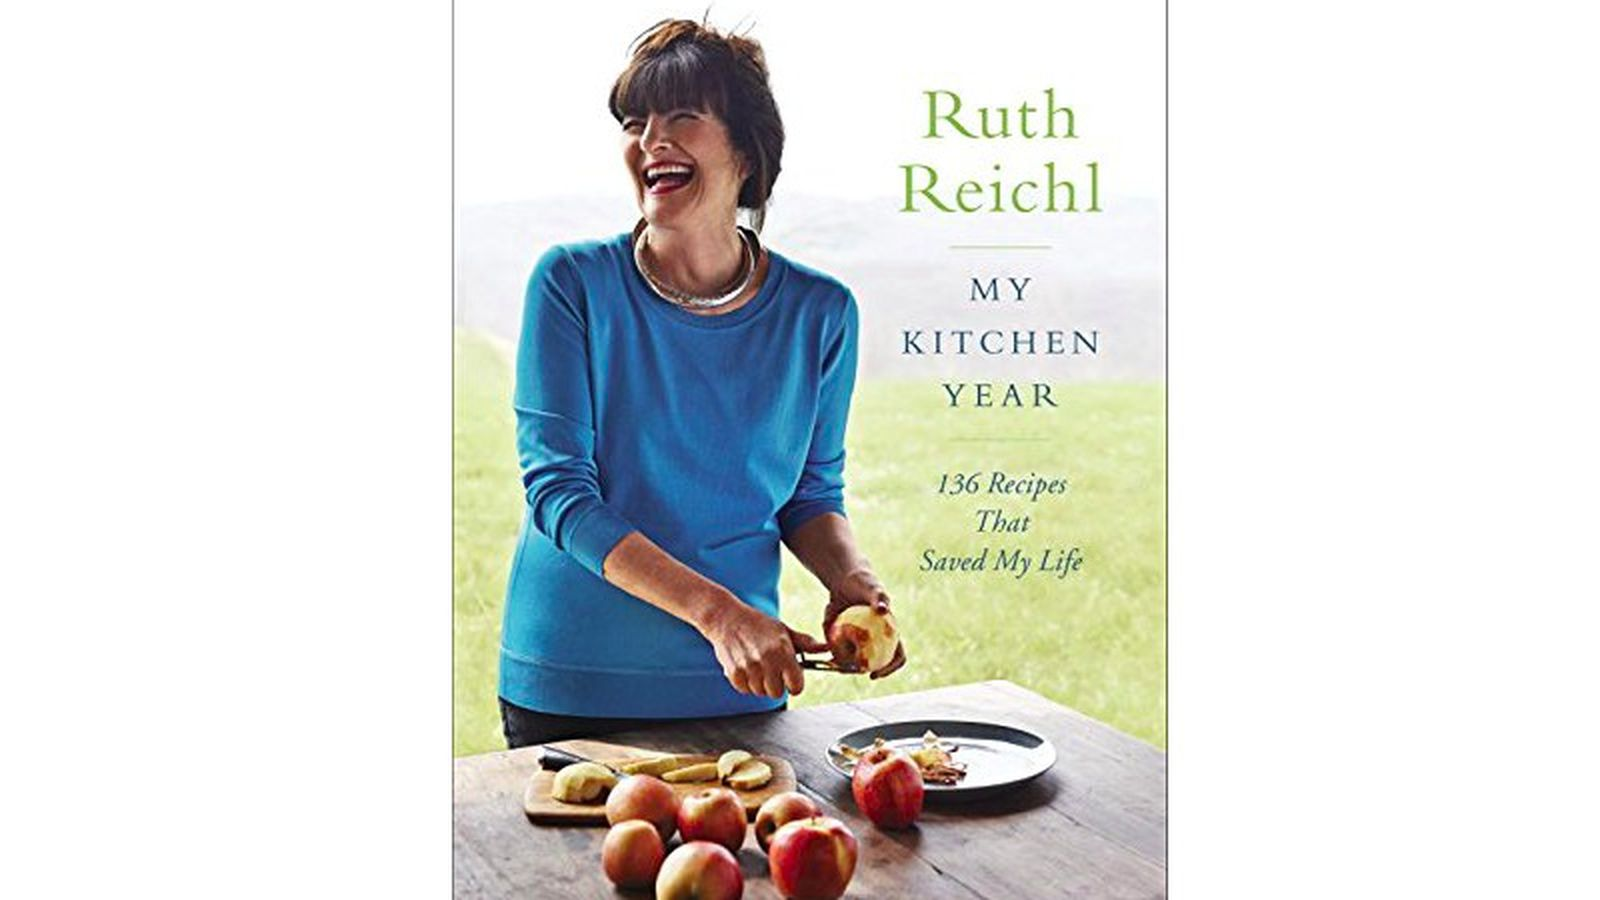 Ruth Reichl Restaurant Reviews